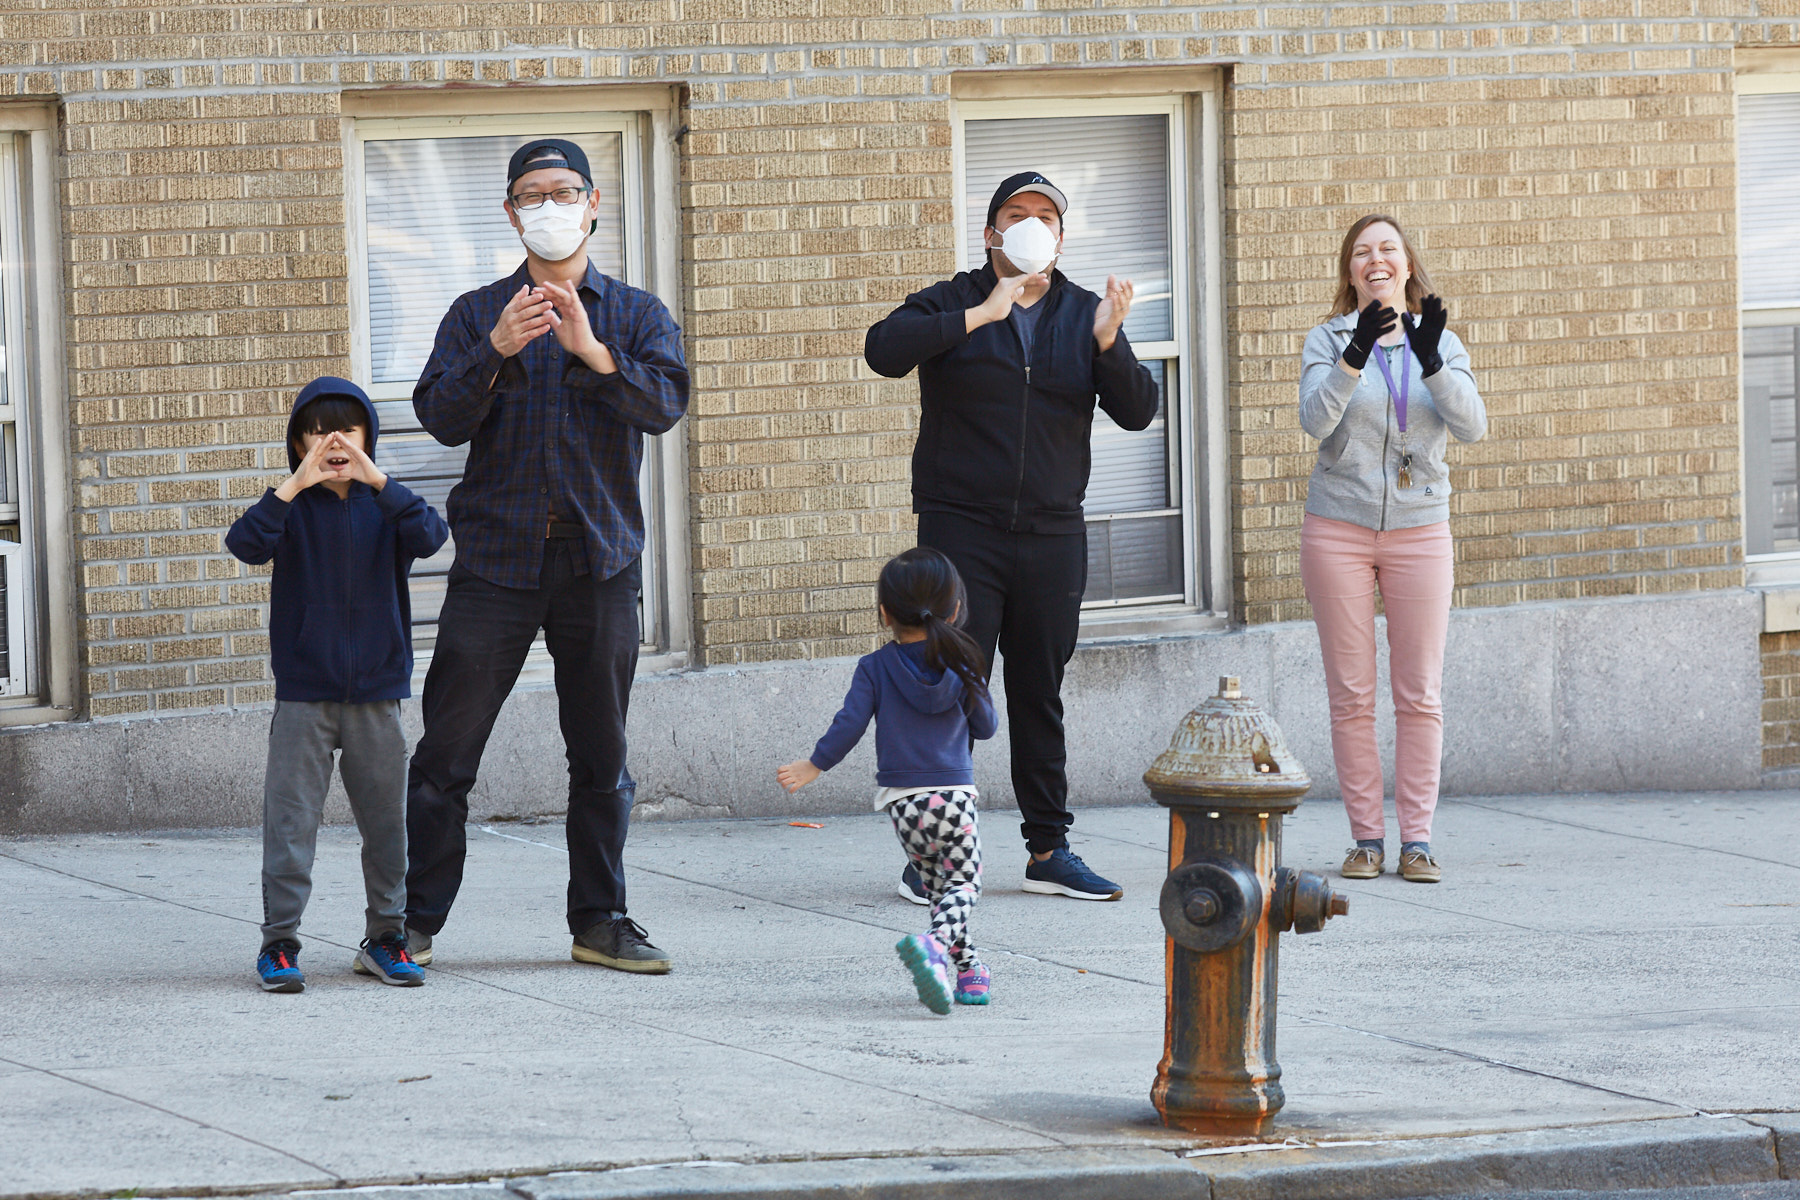 clap because we care NYC for medical staff during coronavirus